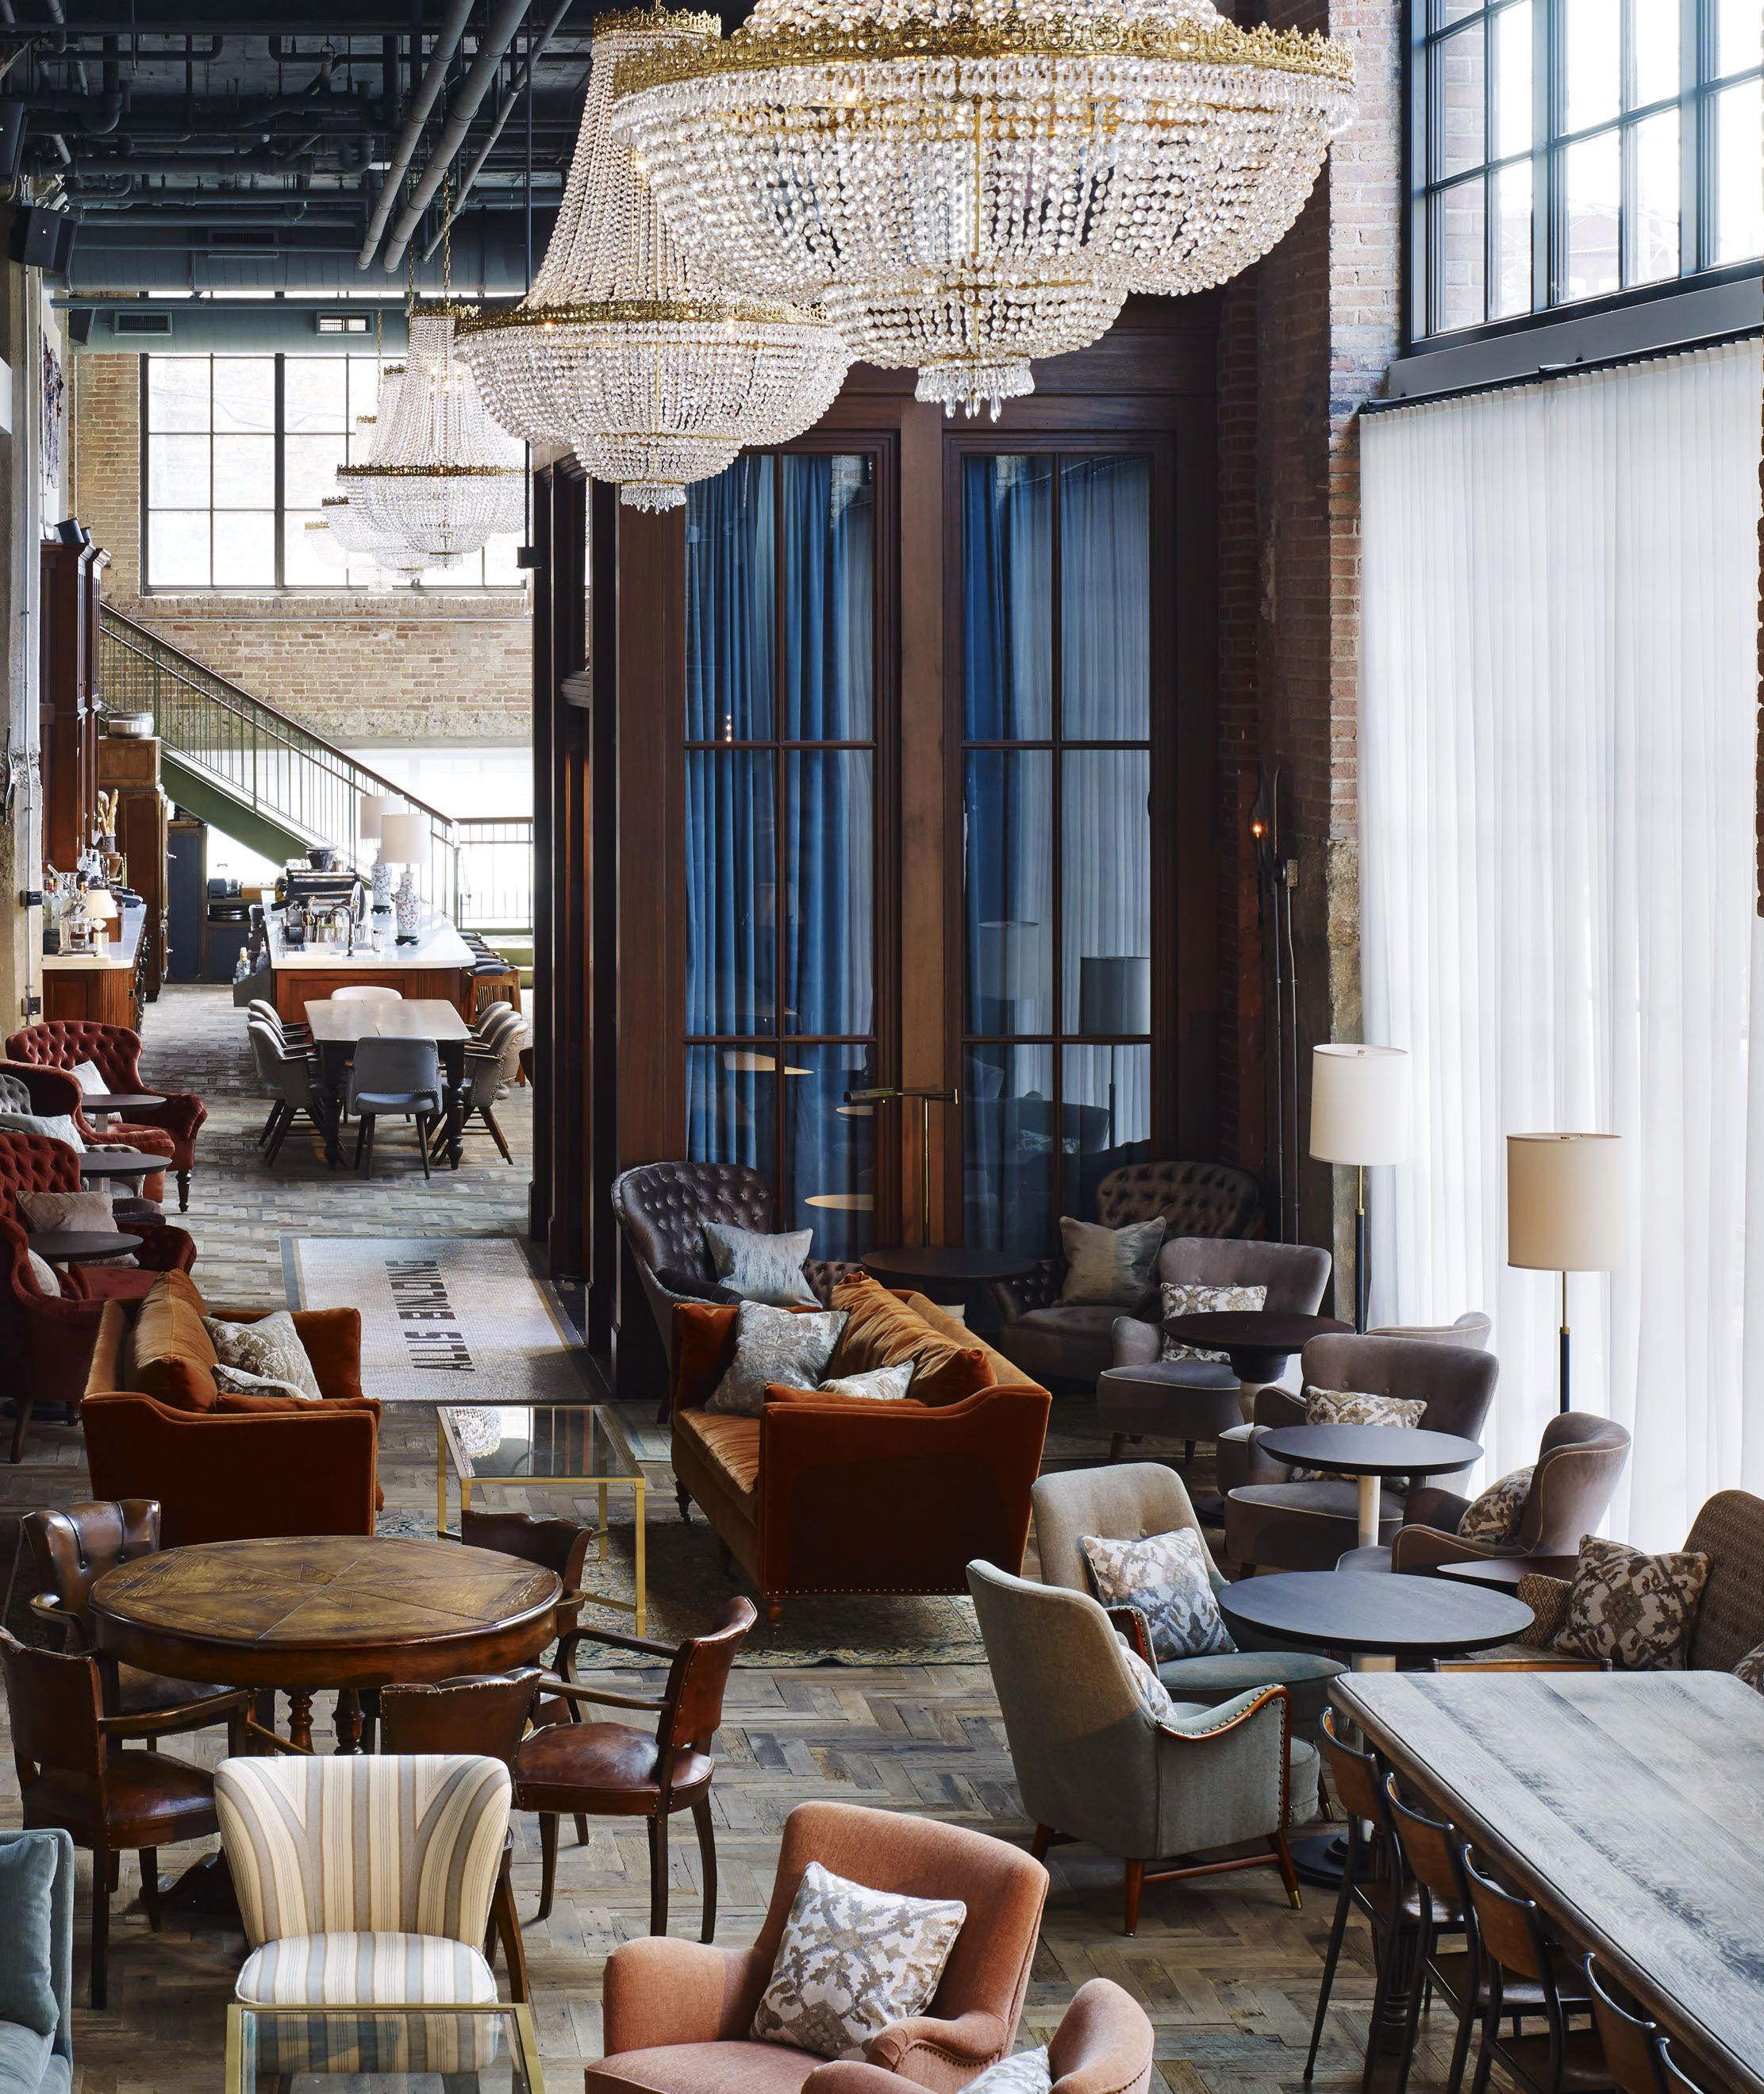 SoHo House Chicago Allis love the round tables uld go well